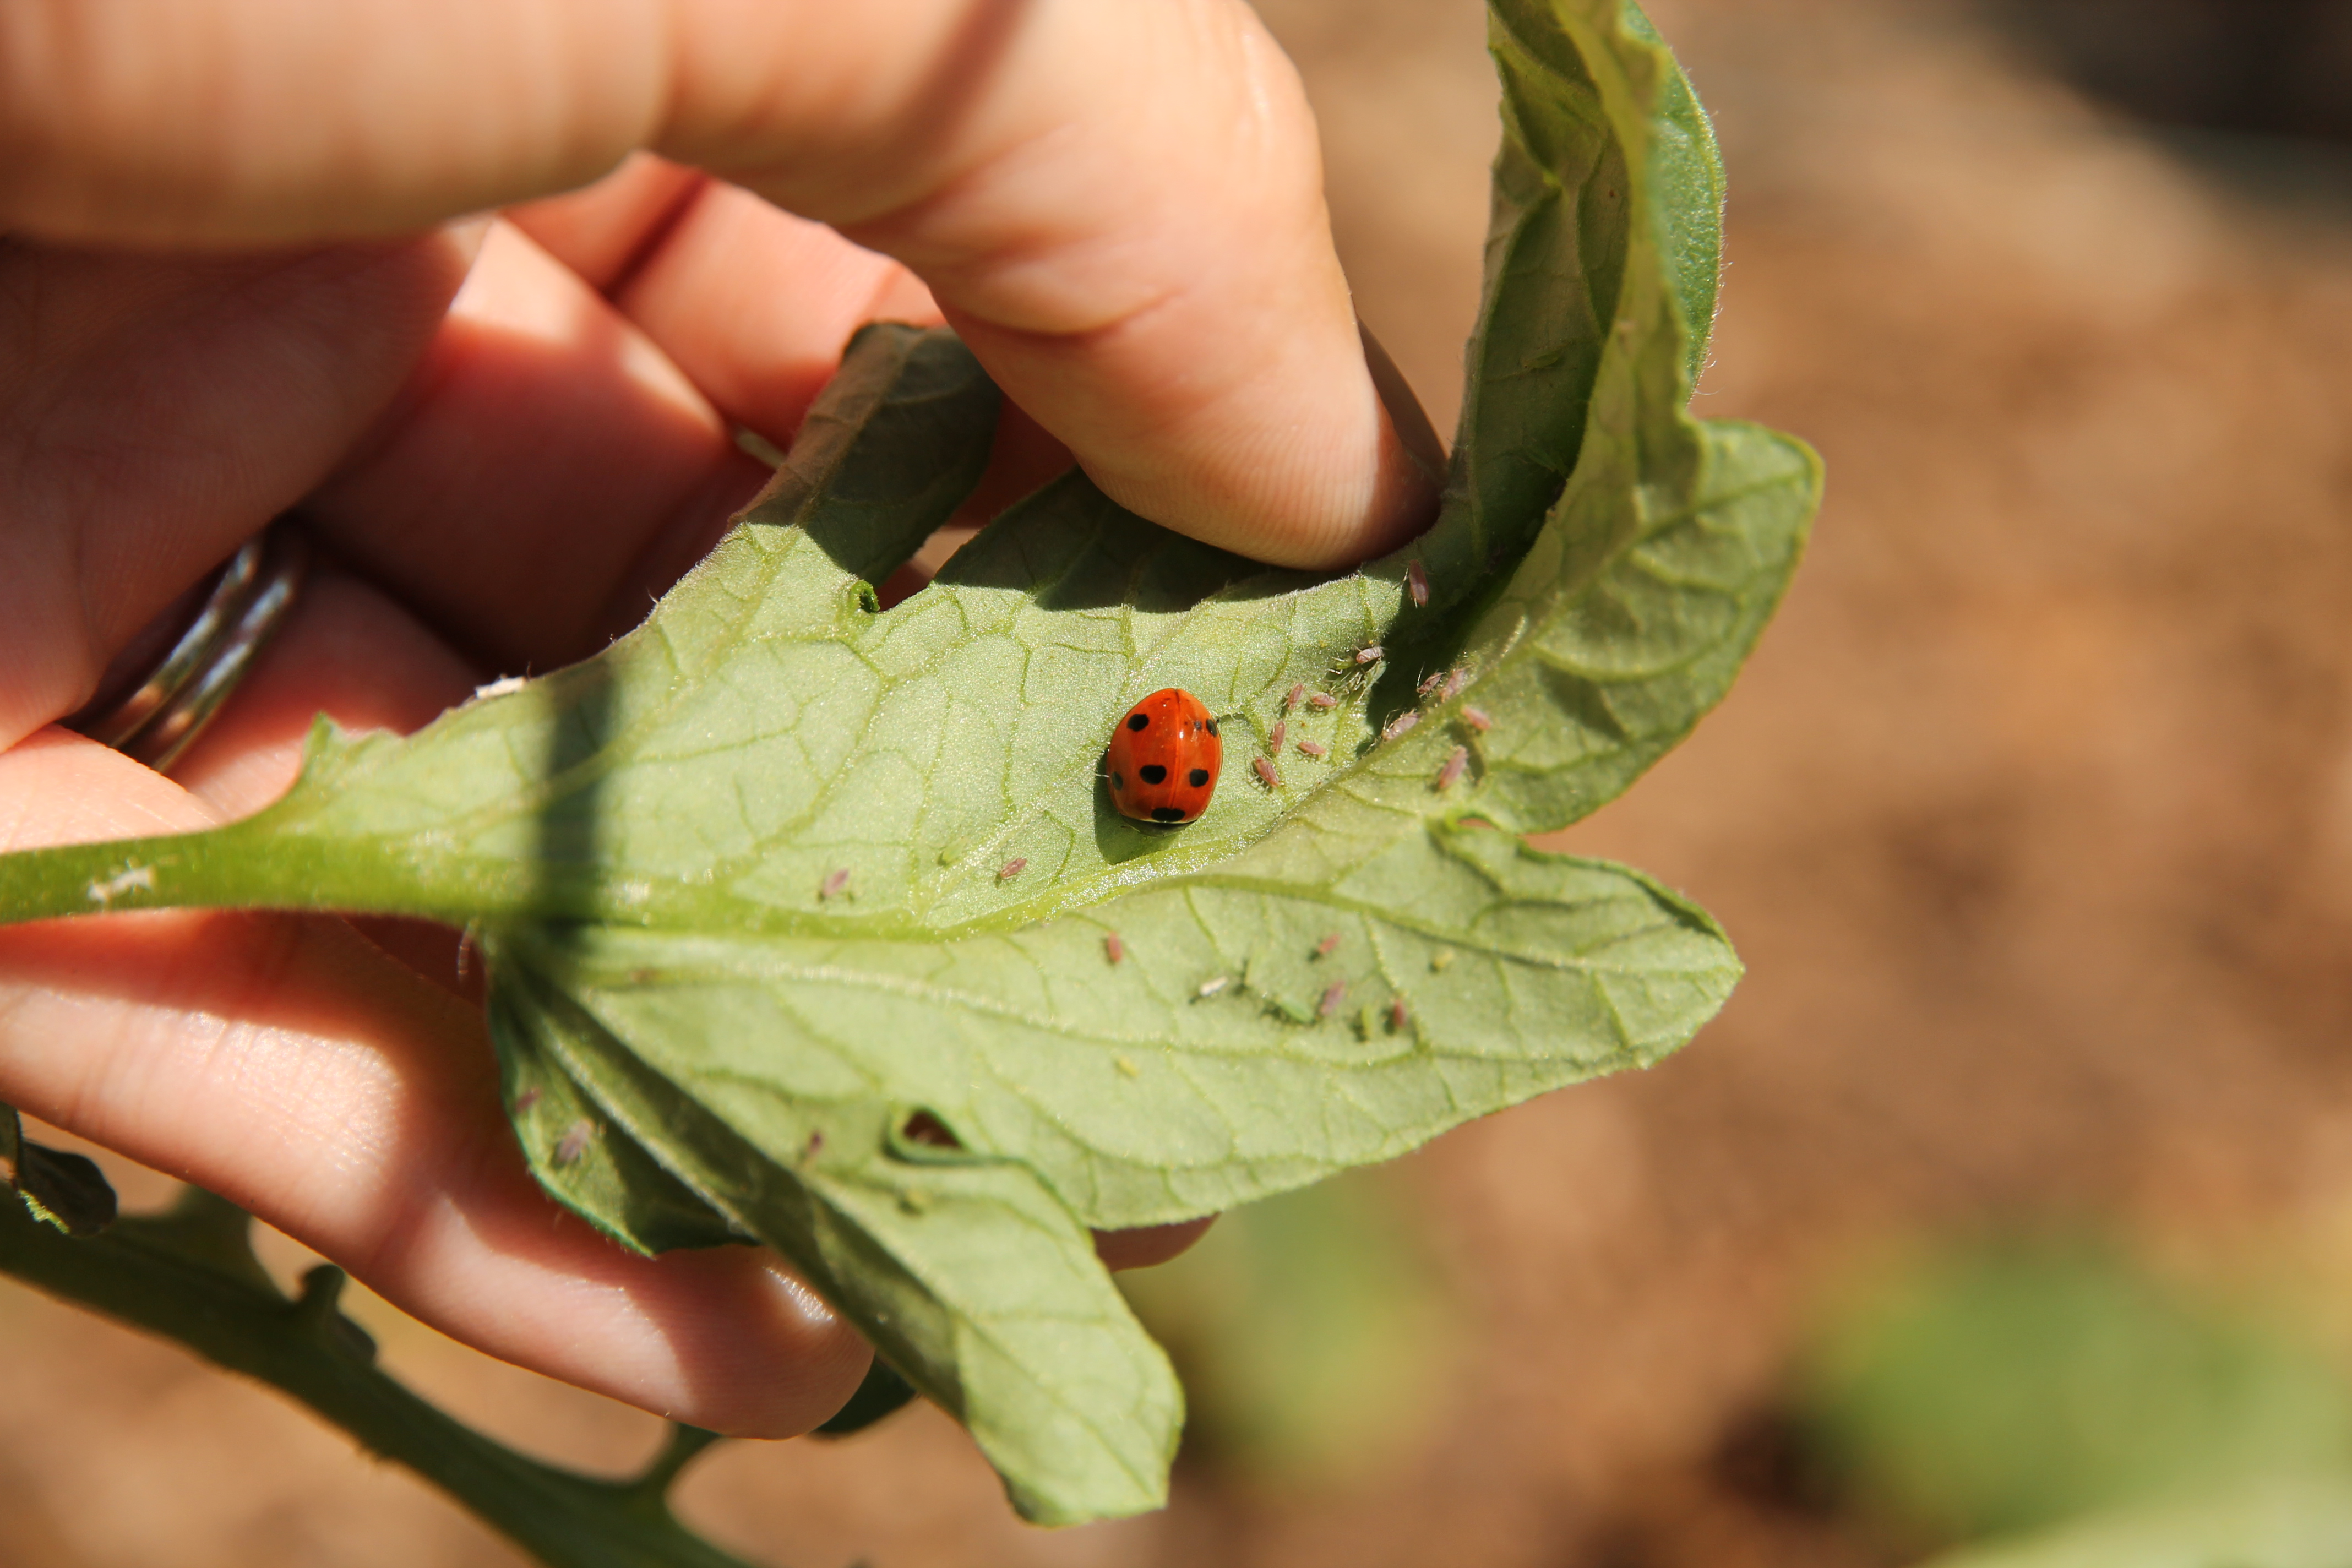 how to stop ants from eating vegetable garden